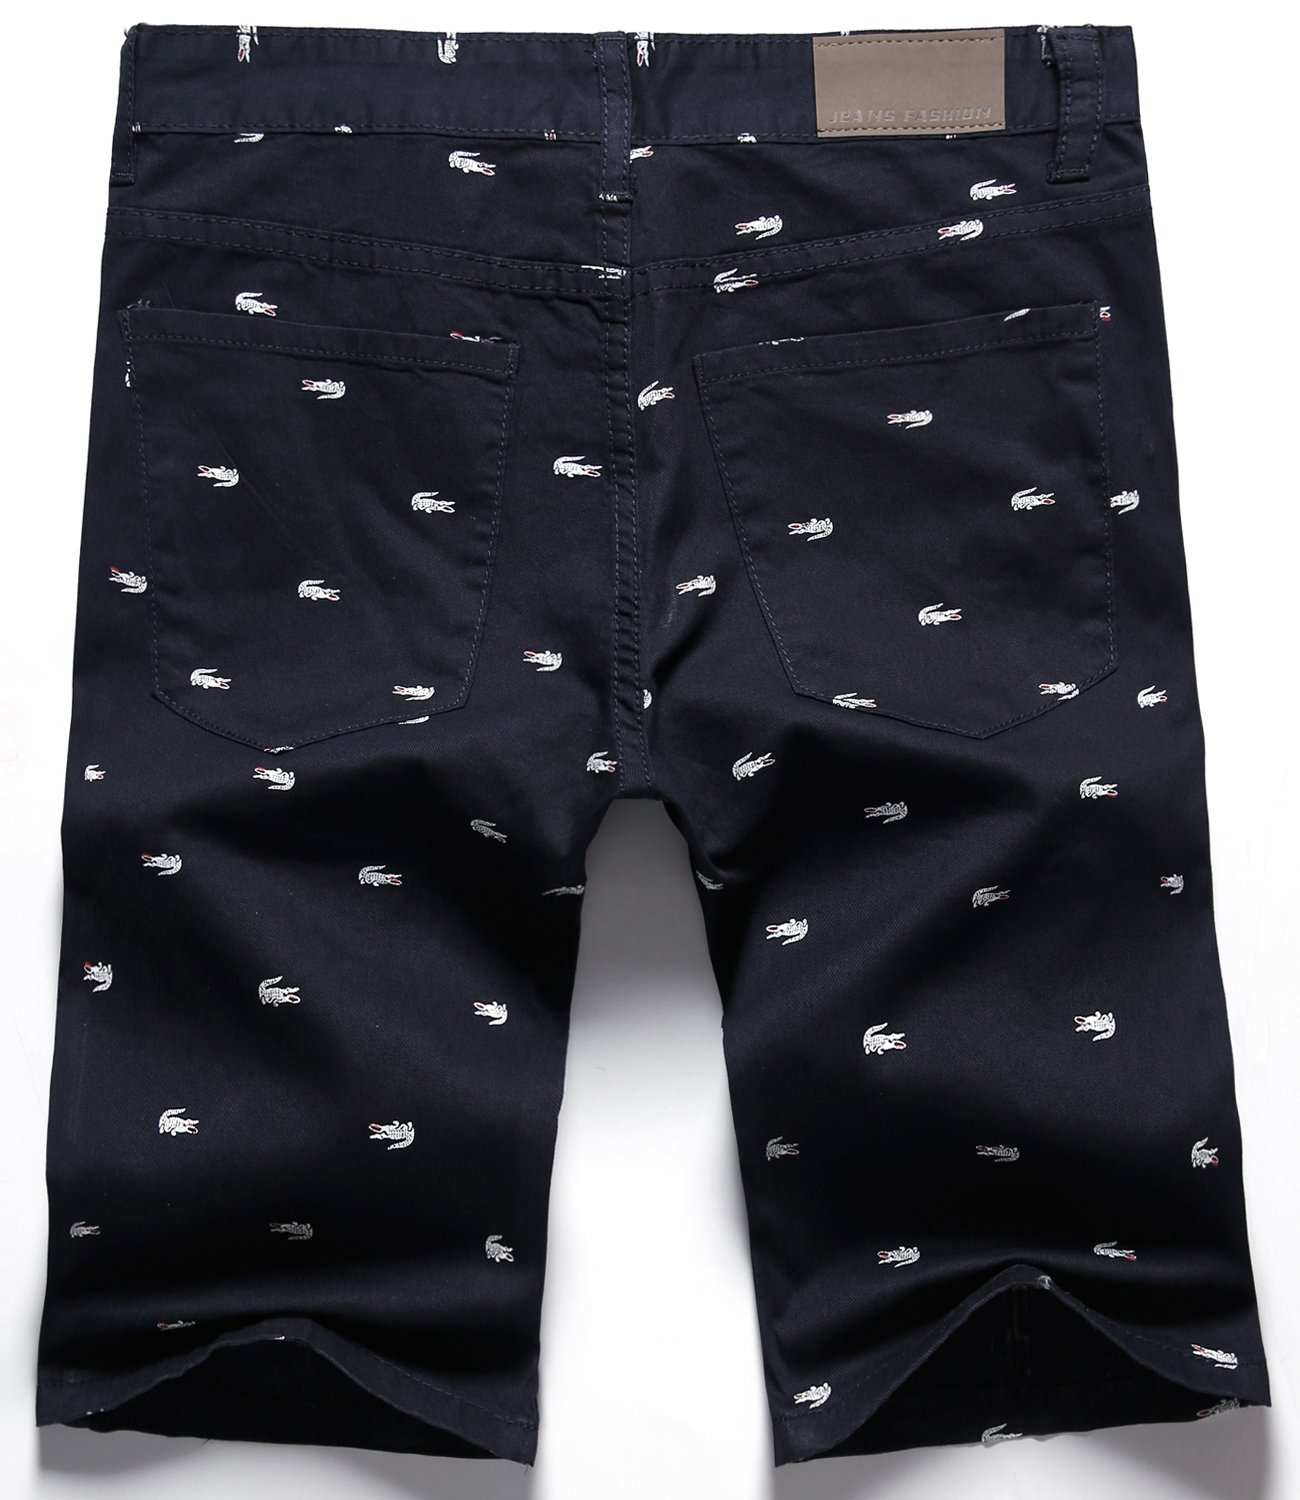 HENGAO Men's Casual Classic Fit Bermuda Chino Flat Front Shorts, Navy Blue, US 28 = Tag 29 by HENGAO (Image #2)